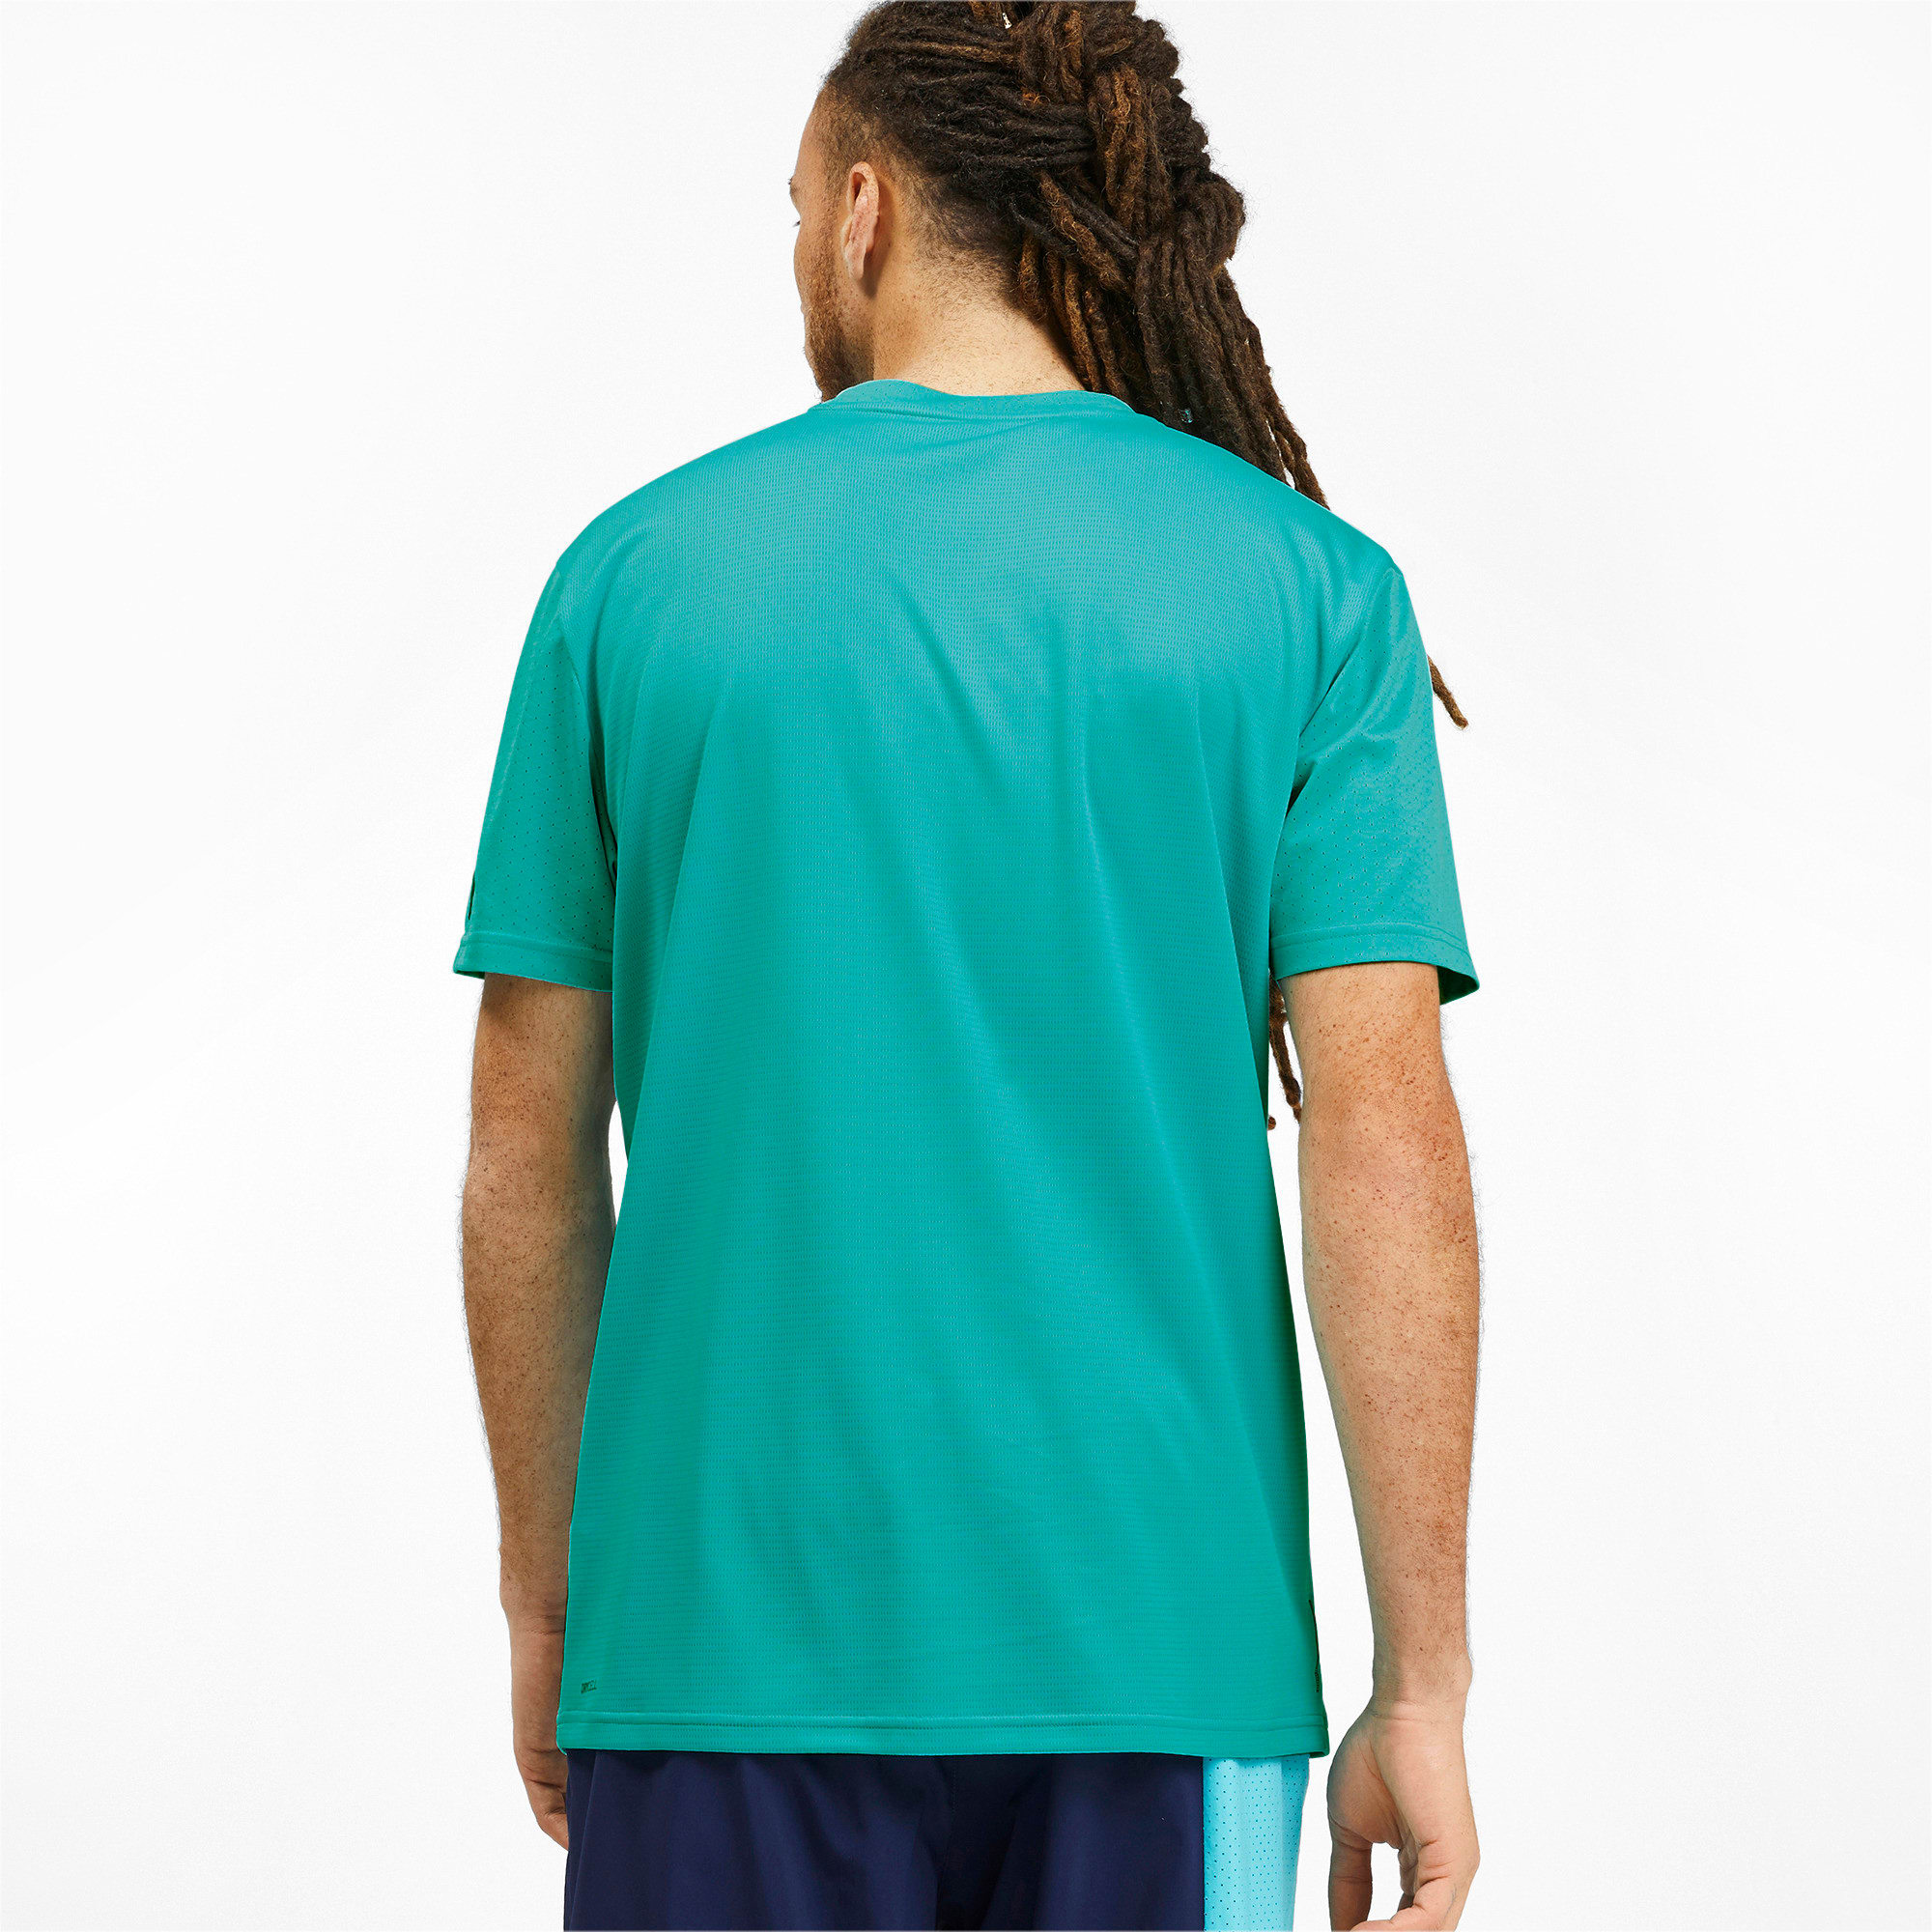 Thumbnail 2 of T-Shirt Collective pour homme, Blue Turquoise, medium